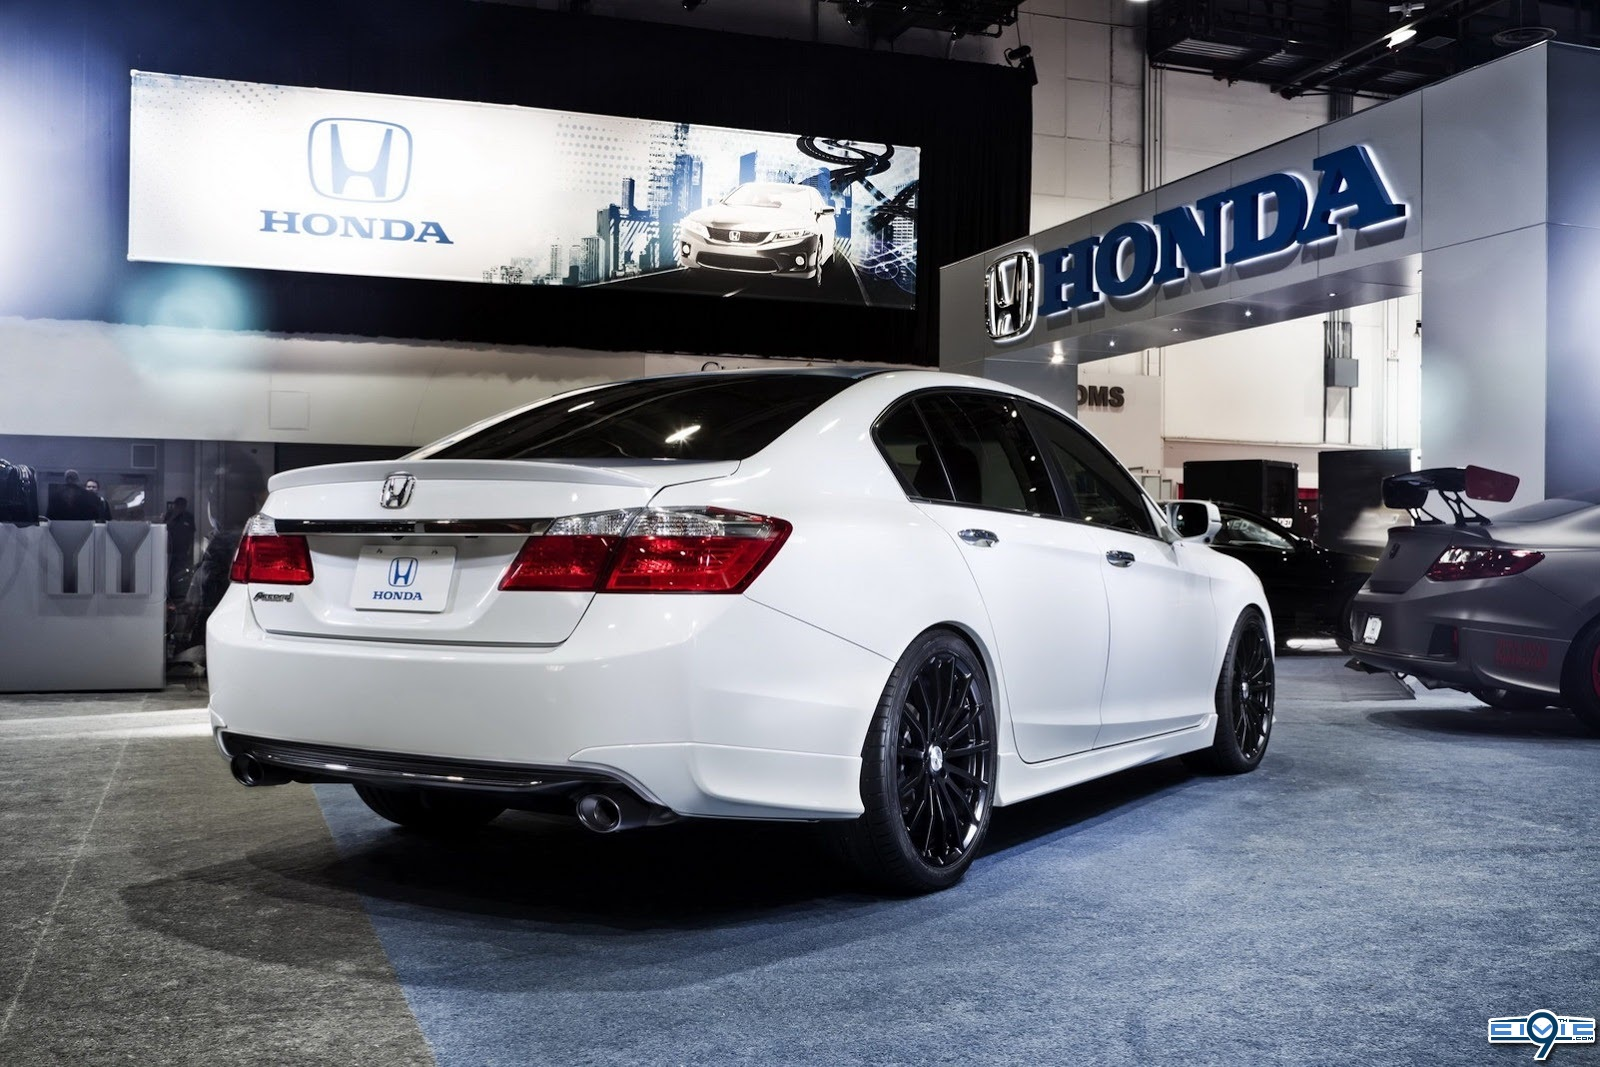 9Th Gen Accord >> 2013 Honda Accord - Page 2 - 6th Gen Accord DIY and ...